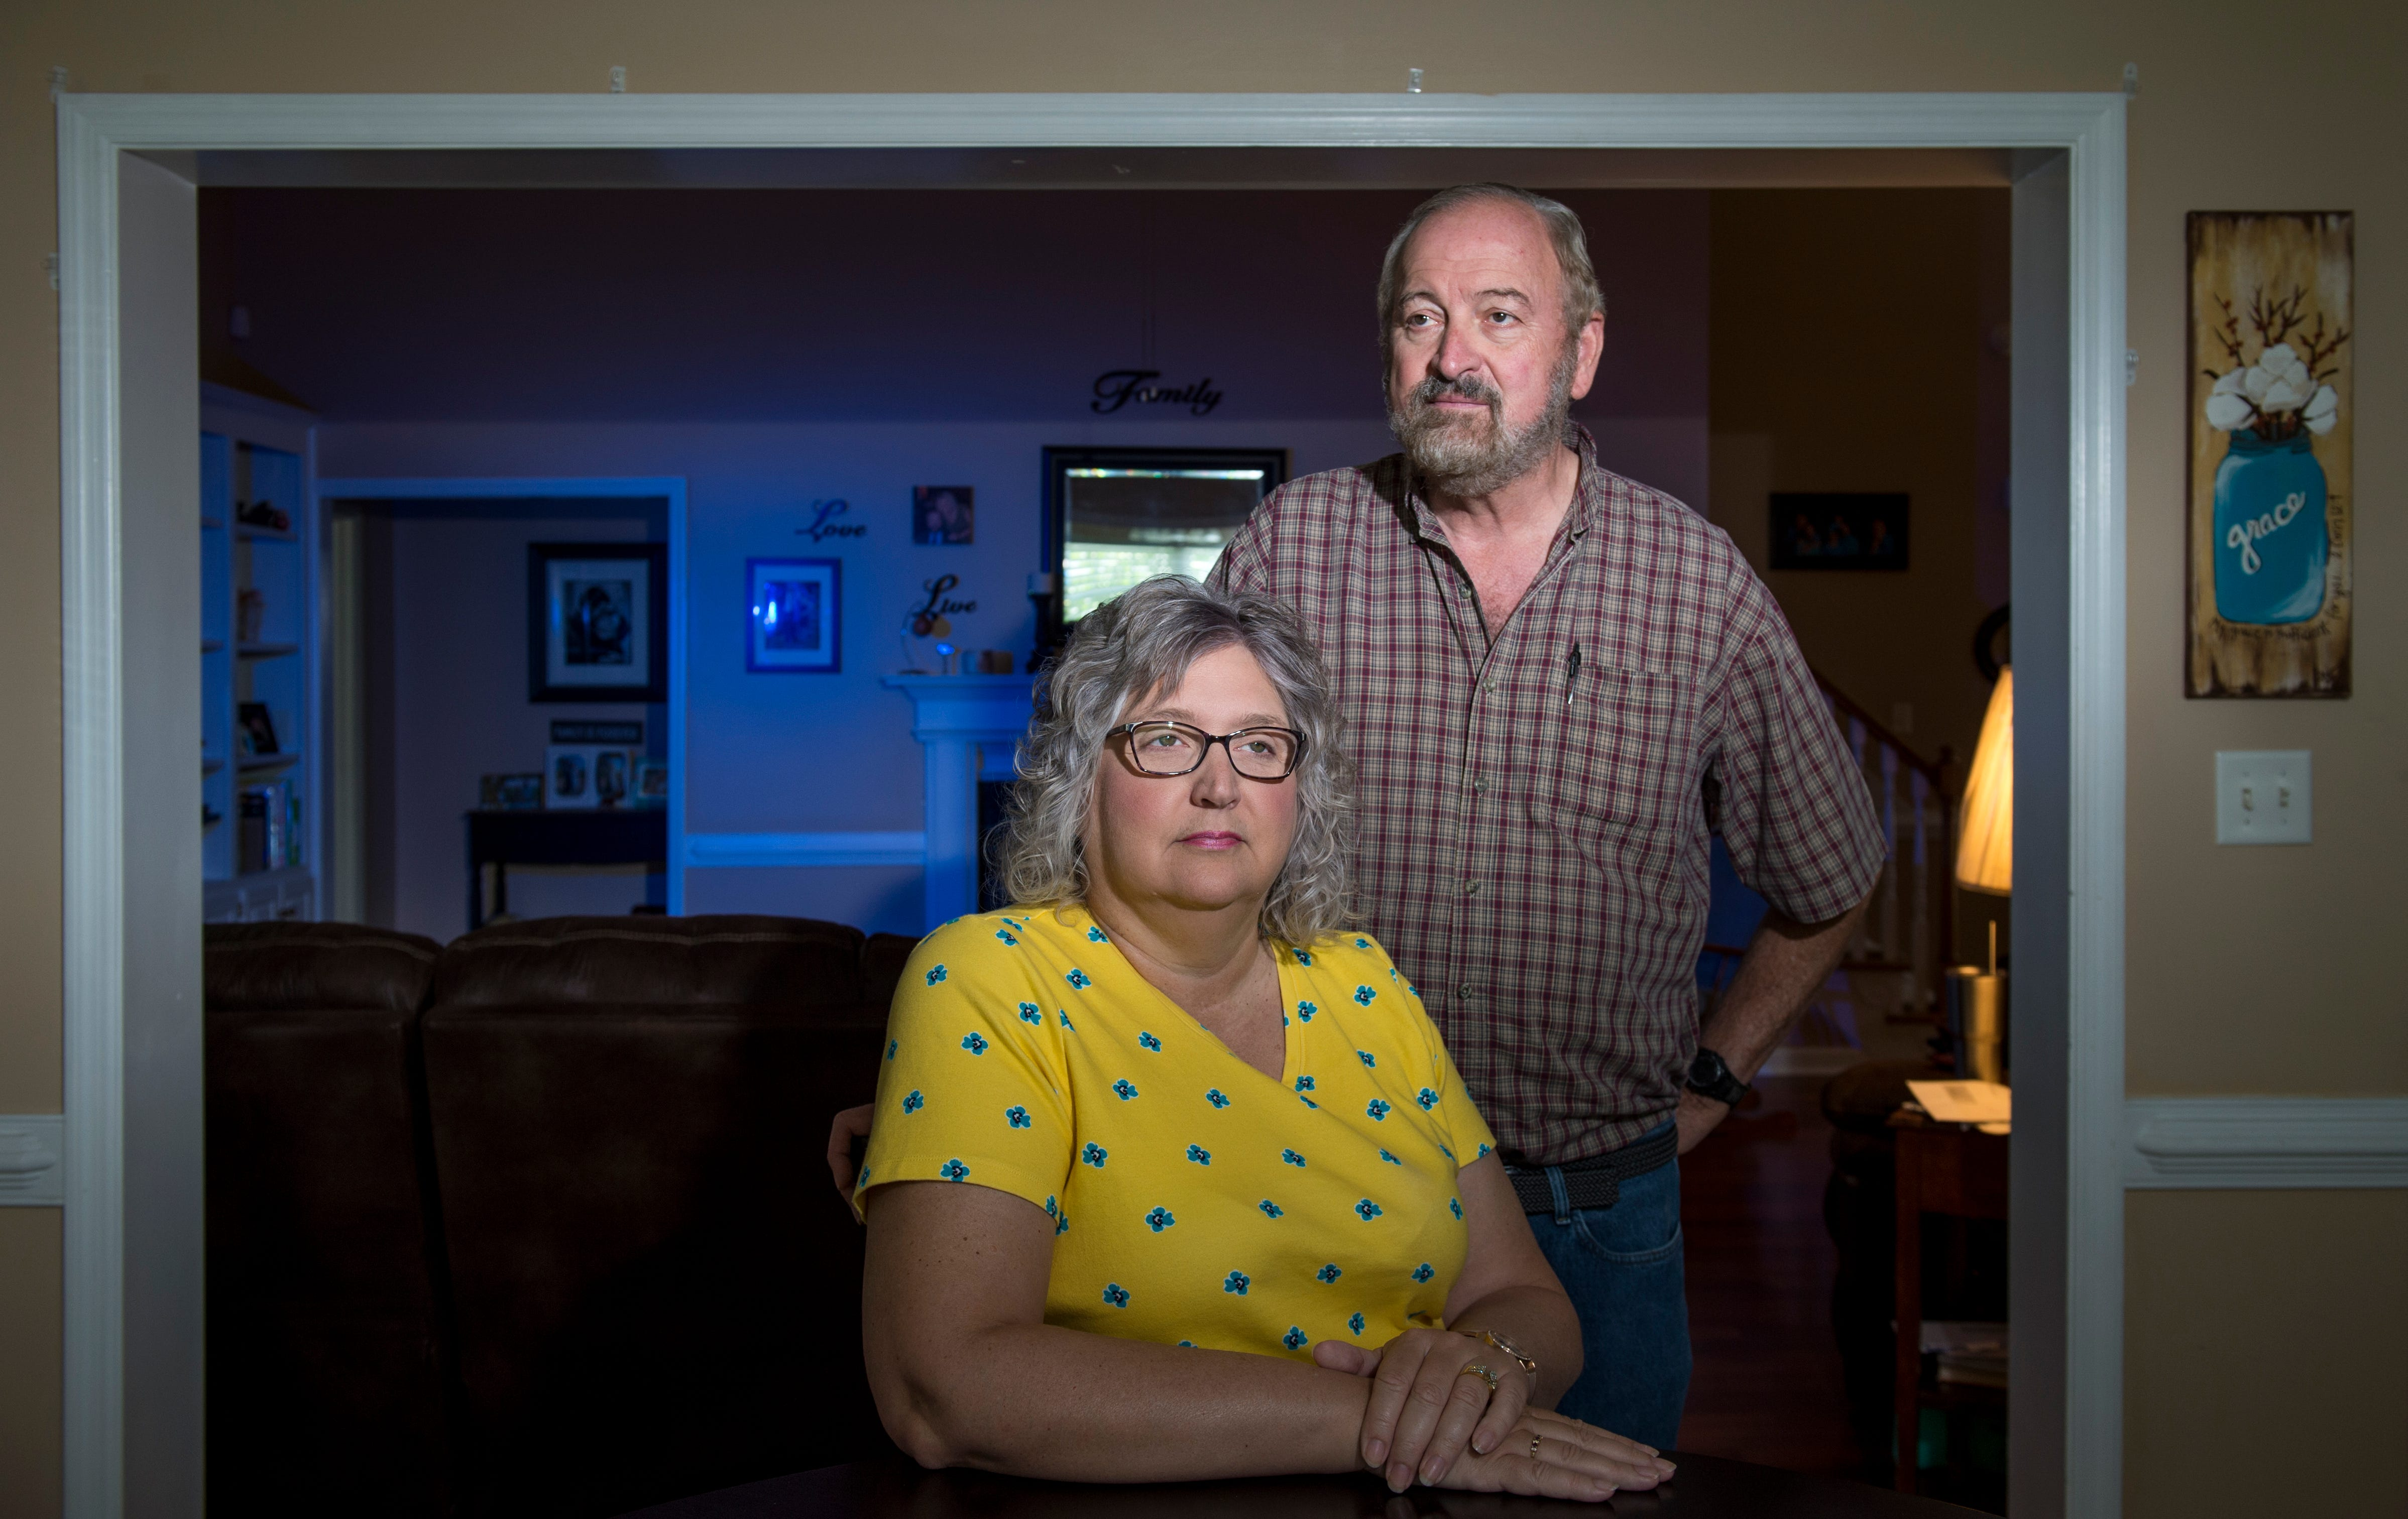 Georgia residents Teresa and John Johnson were aboard a cruise ship that experienced one of the first outbreaks. They were quarantined at Dobbins Air Reserve Base and had symptoms, yet they were never tested before being sent home.